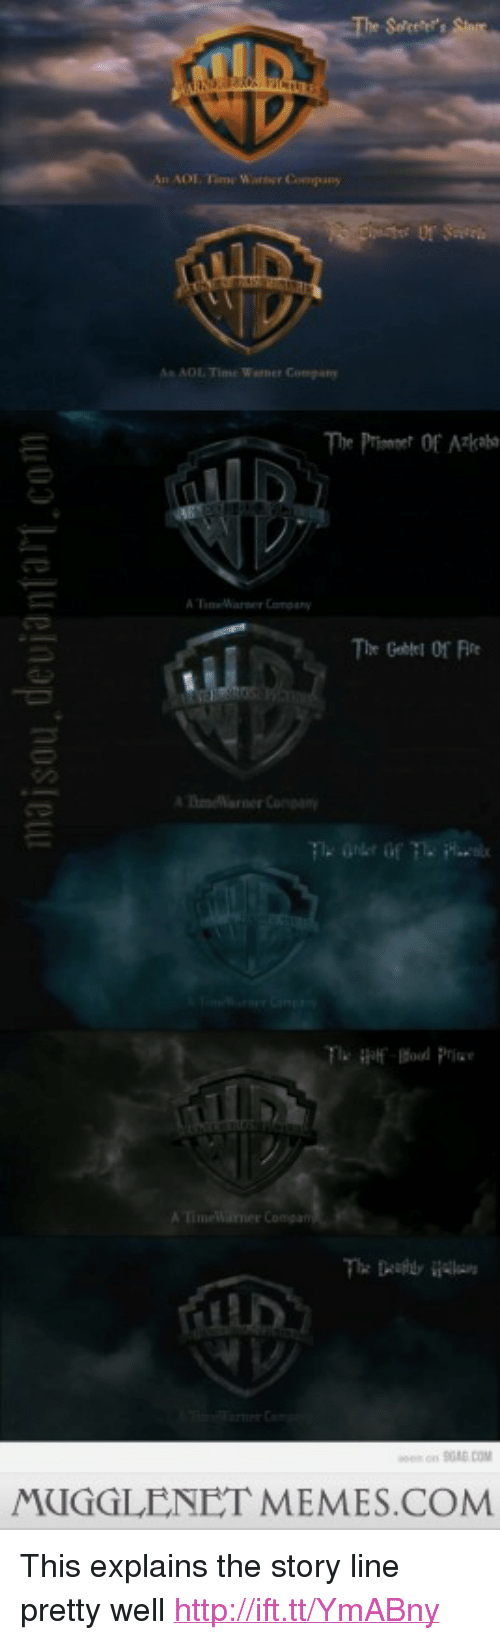 """adl: n ADL. Time Warner Company  ADL Time Worner Company  The Prinet Of Ak  Tmearner Coa  nS0RE.COM  MUGGLENET MEMES.COM <p>This explains the story line pretty well <a href=""""http://ift.tt/YmABny"""">http://ift.tt/YmABny</a></p>"""